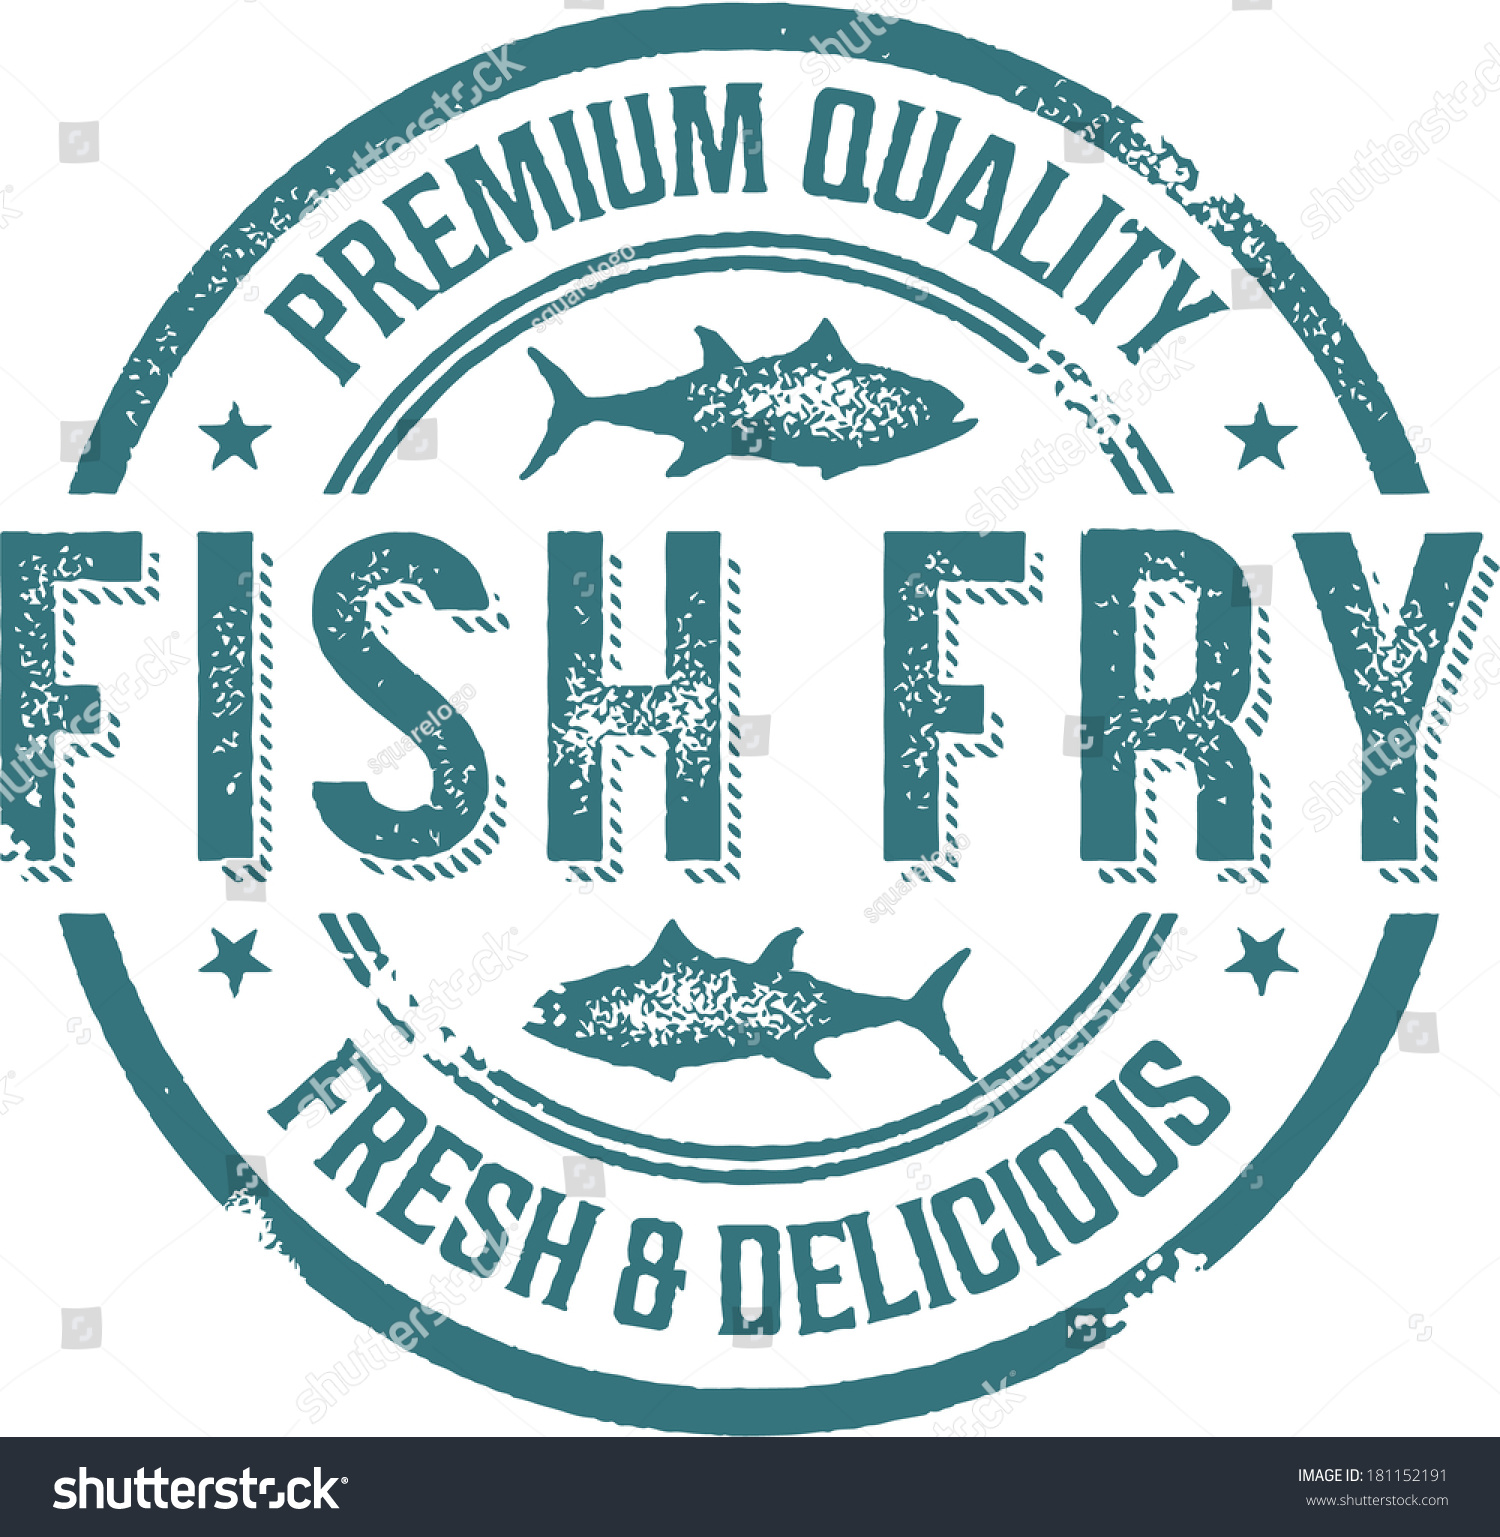 Lenten fish fry clip art pictures to pin on pinterest for Fish symboled stamp